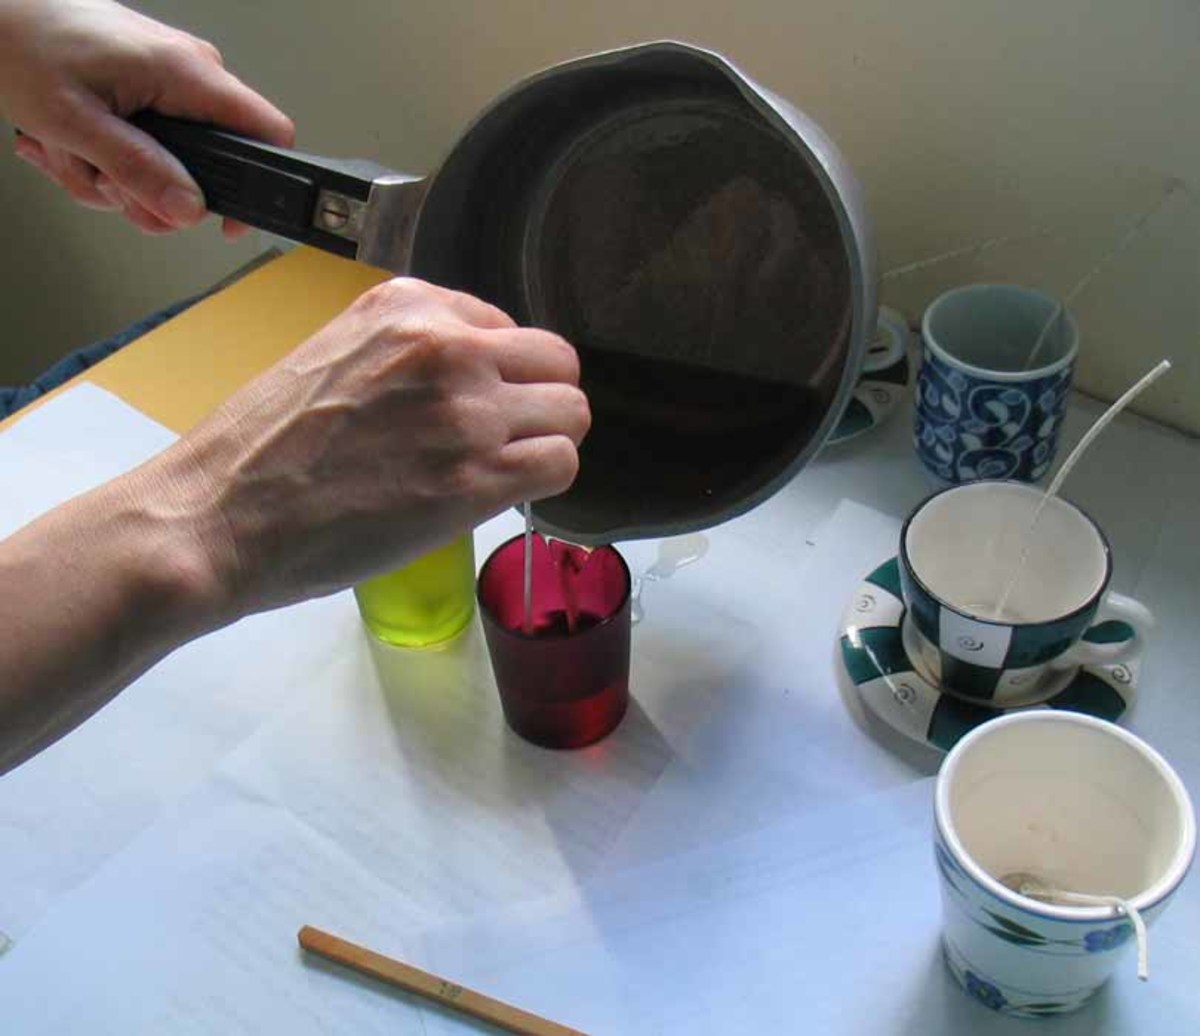 Pouring wax into a container